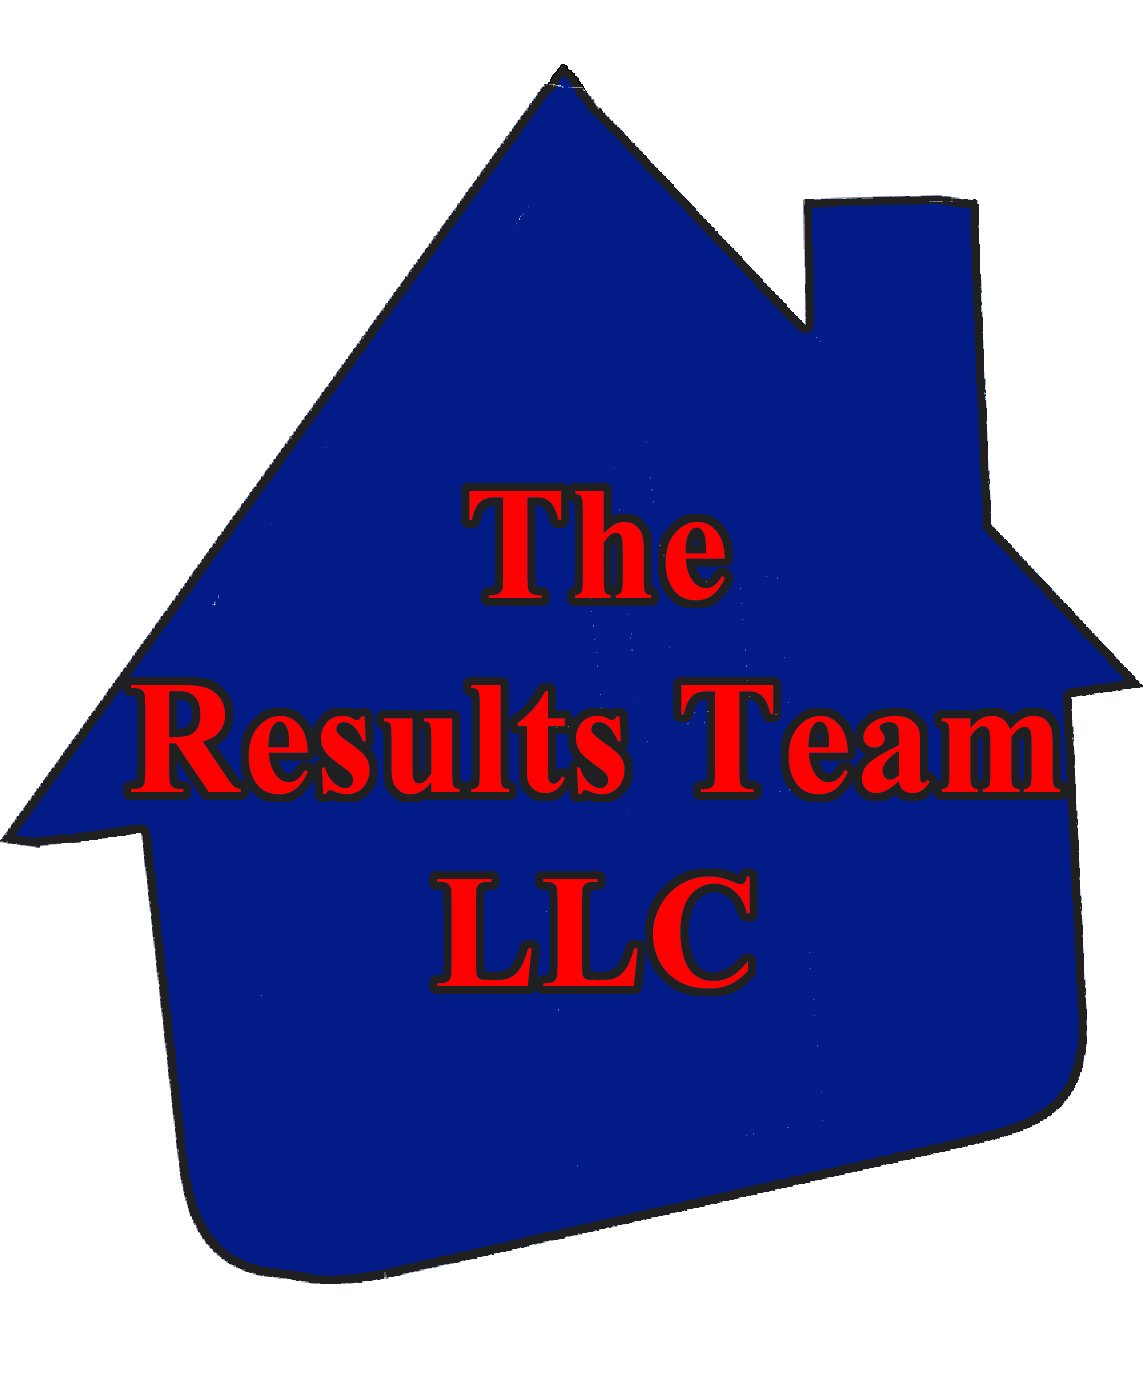 The Results Team LLC logo(1).jpg